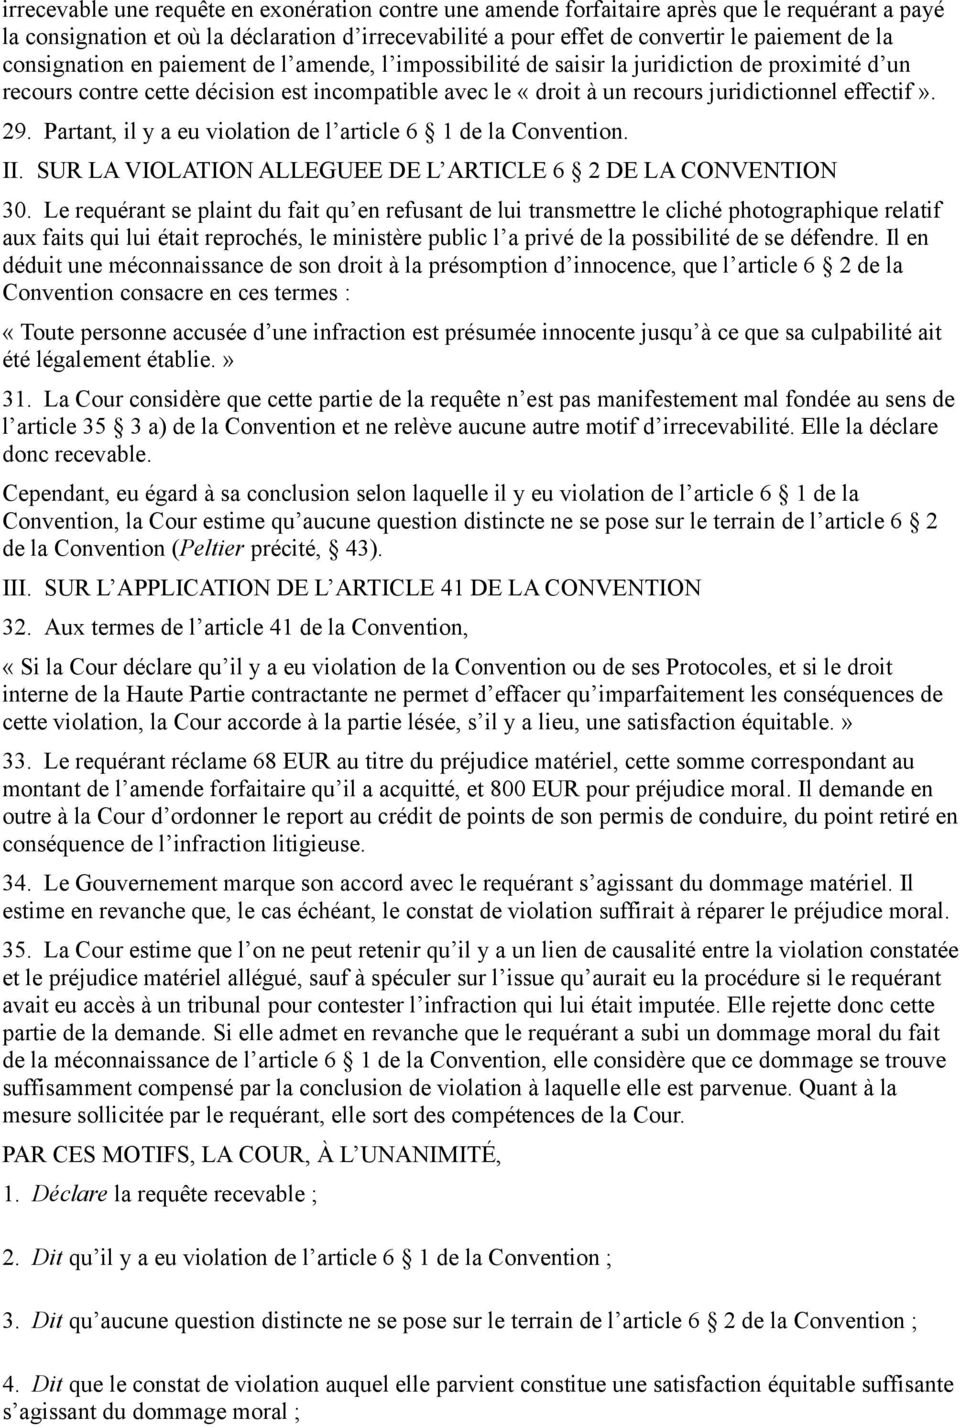 29. Partant, il y a eu violation de l article 6 1 de la Convention. II. SUR LA VIOLATION ALLEGUEE DE L ARTICLE 6 2 DE LA CONVENTION 30.